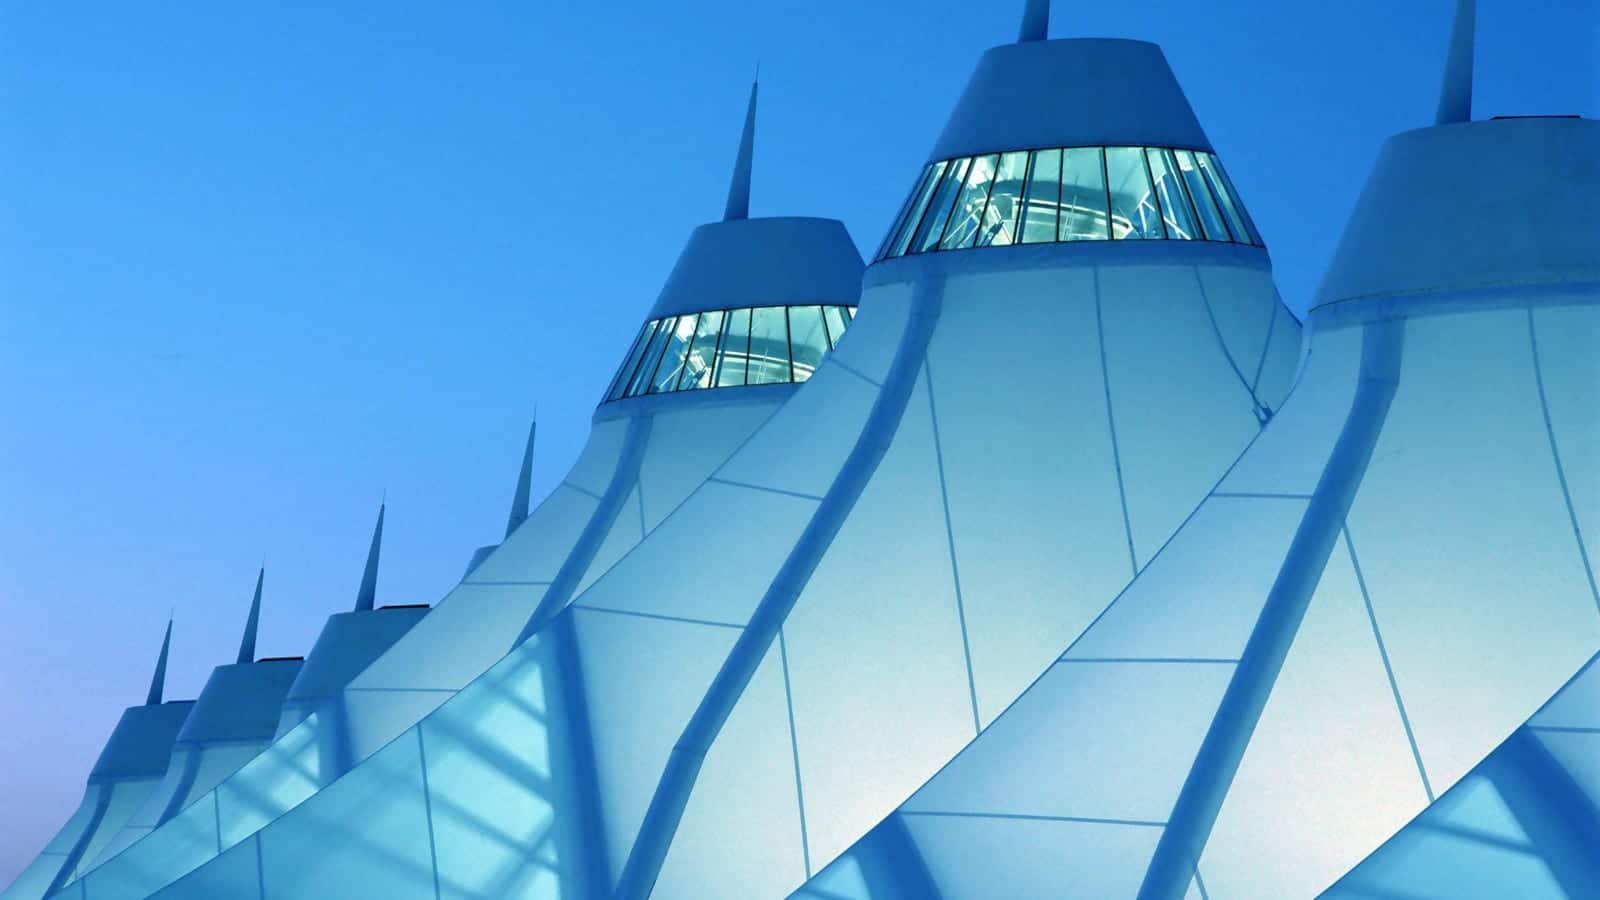 Colorado Commercial Airports Denver International Airport Peaks